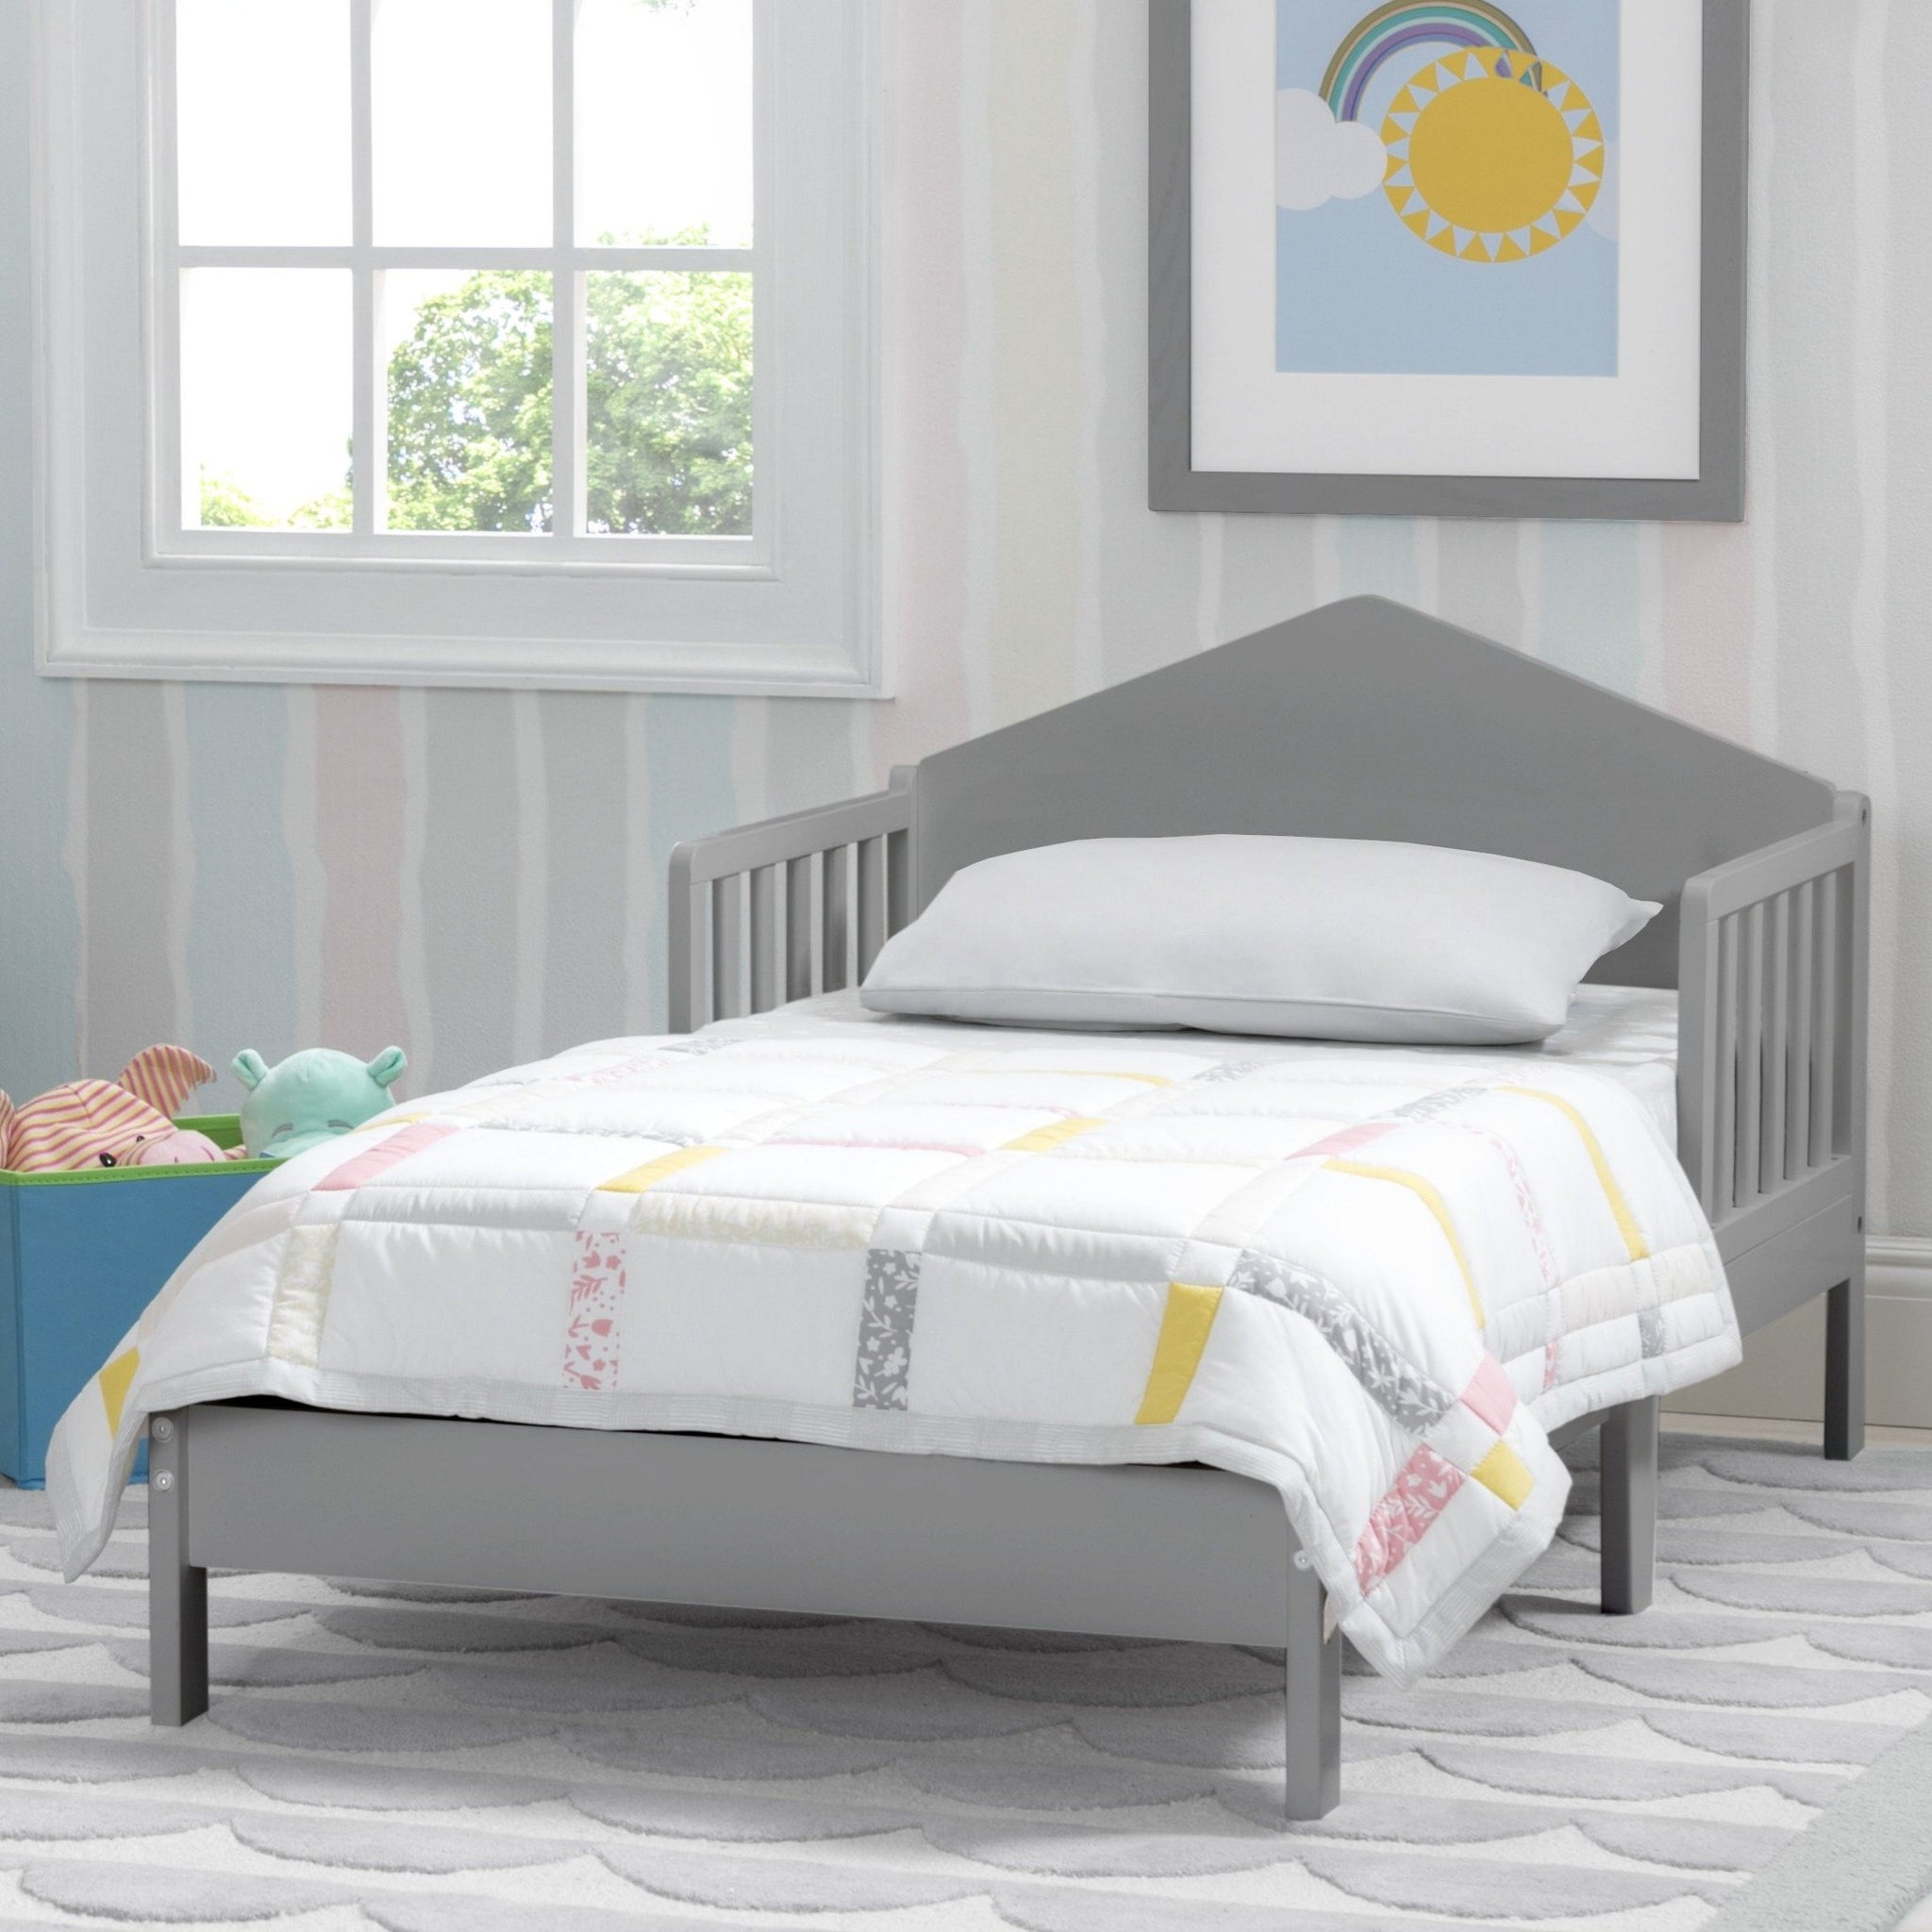 Homestead Toddler Bed